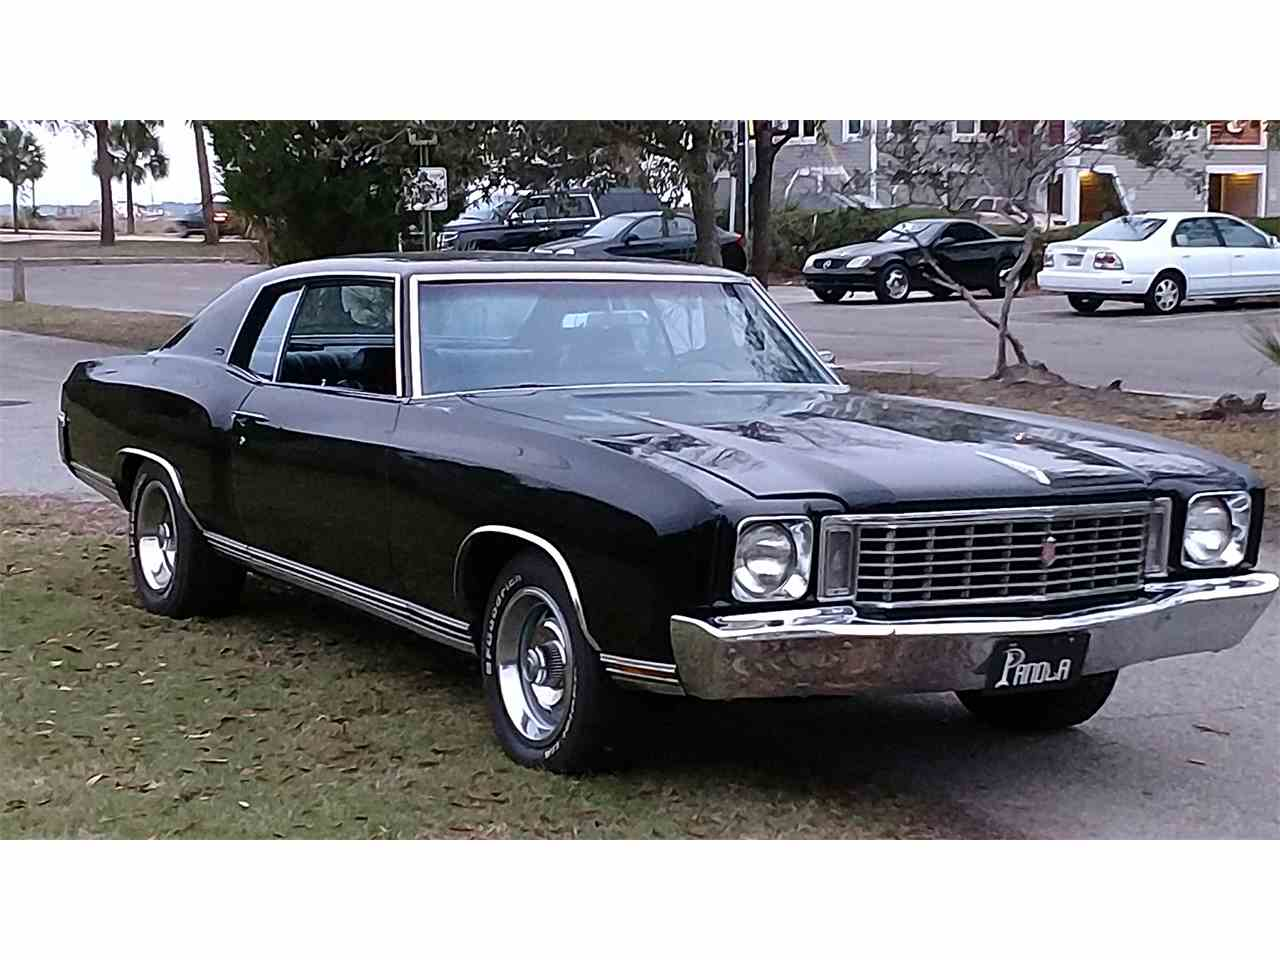 Large Picture of Classic 1972 Chevrolet Monte Carlo located in South Carolina - $16,800.00 - KZFB